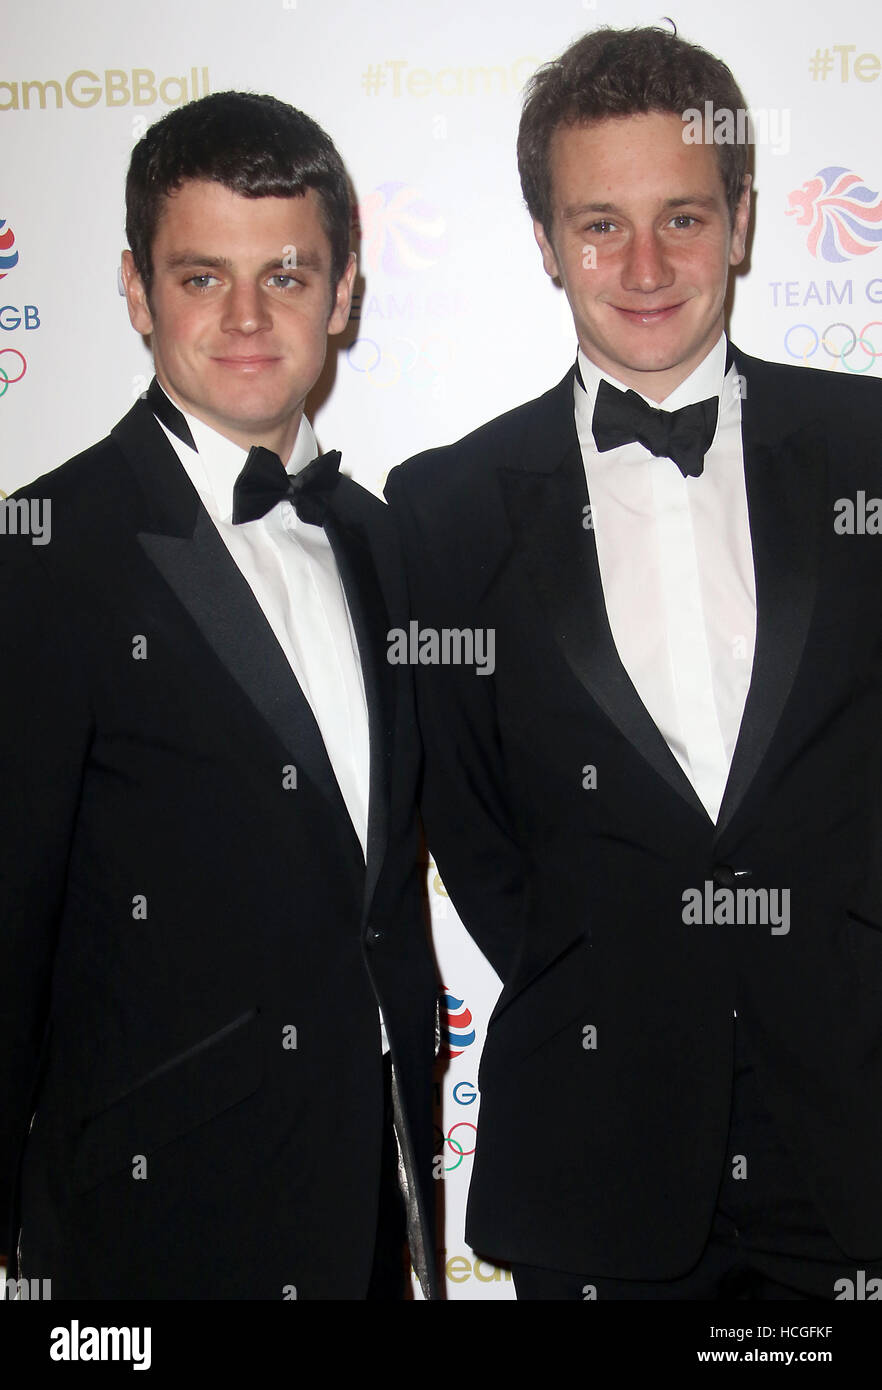 Nov 30, 2016  - Jonathan Brownlee (L) and Alistair Brownlee attending Team GB Ball at Battersea Evolution in London, - Stock Image